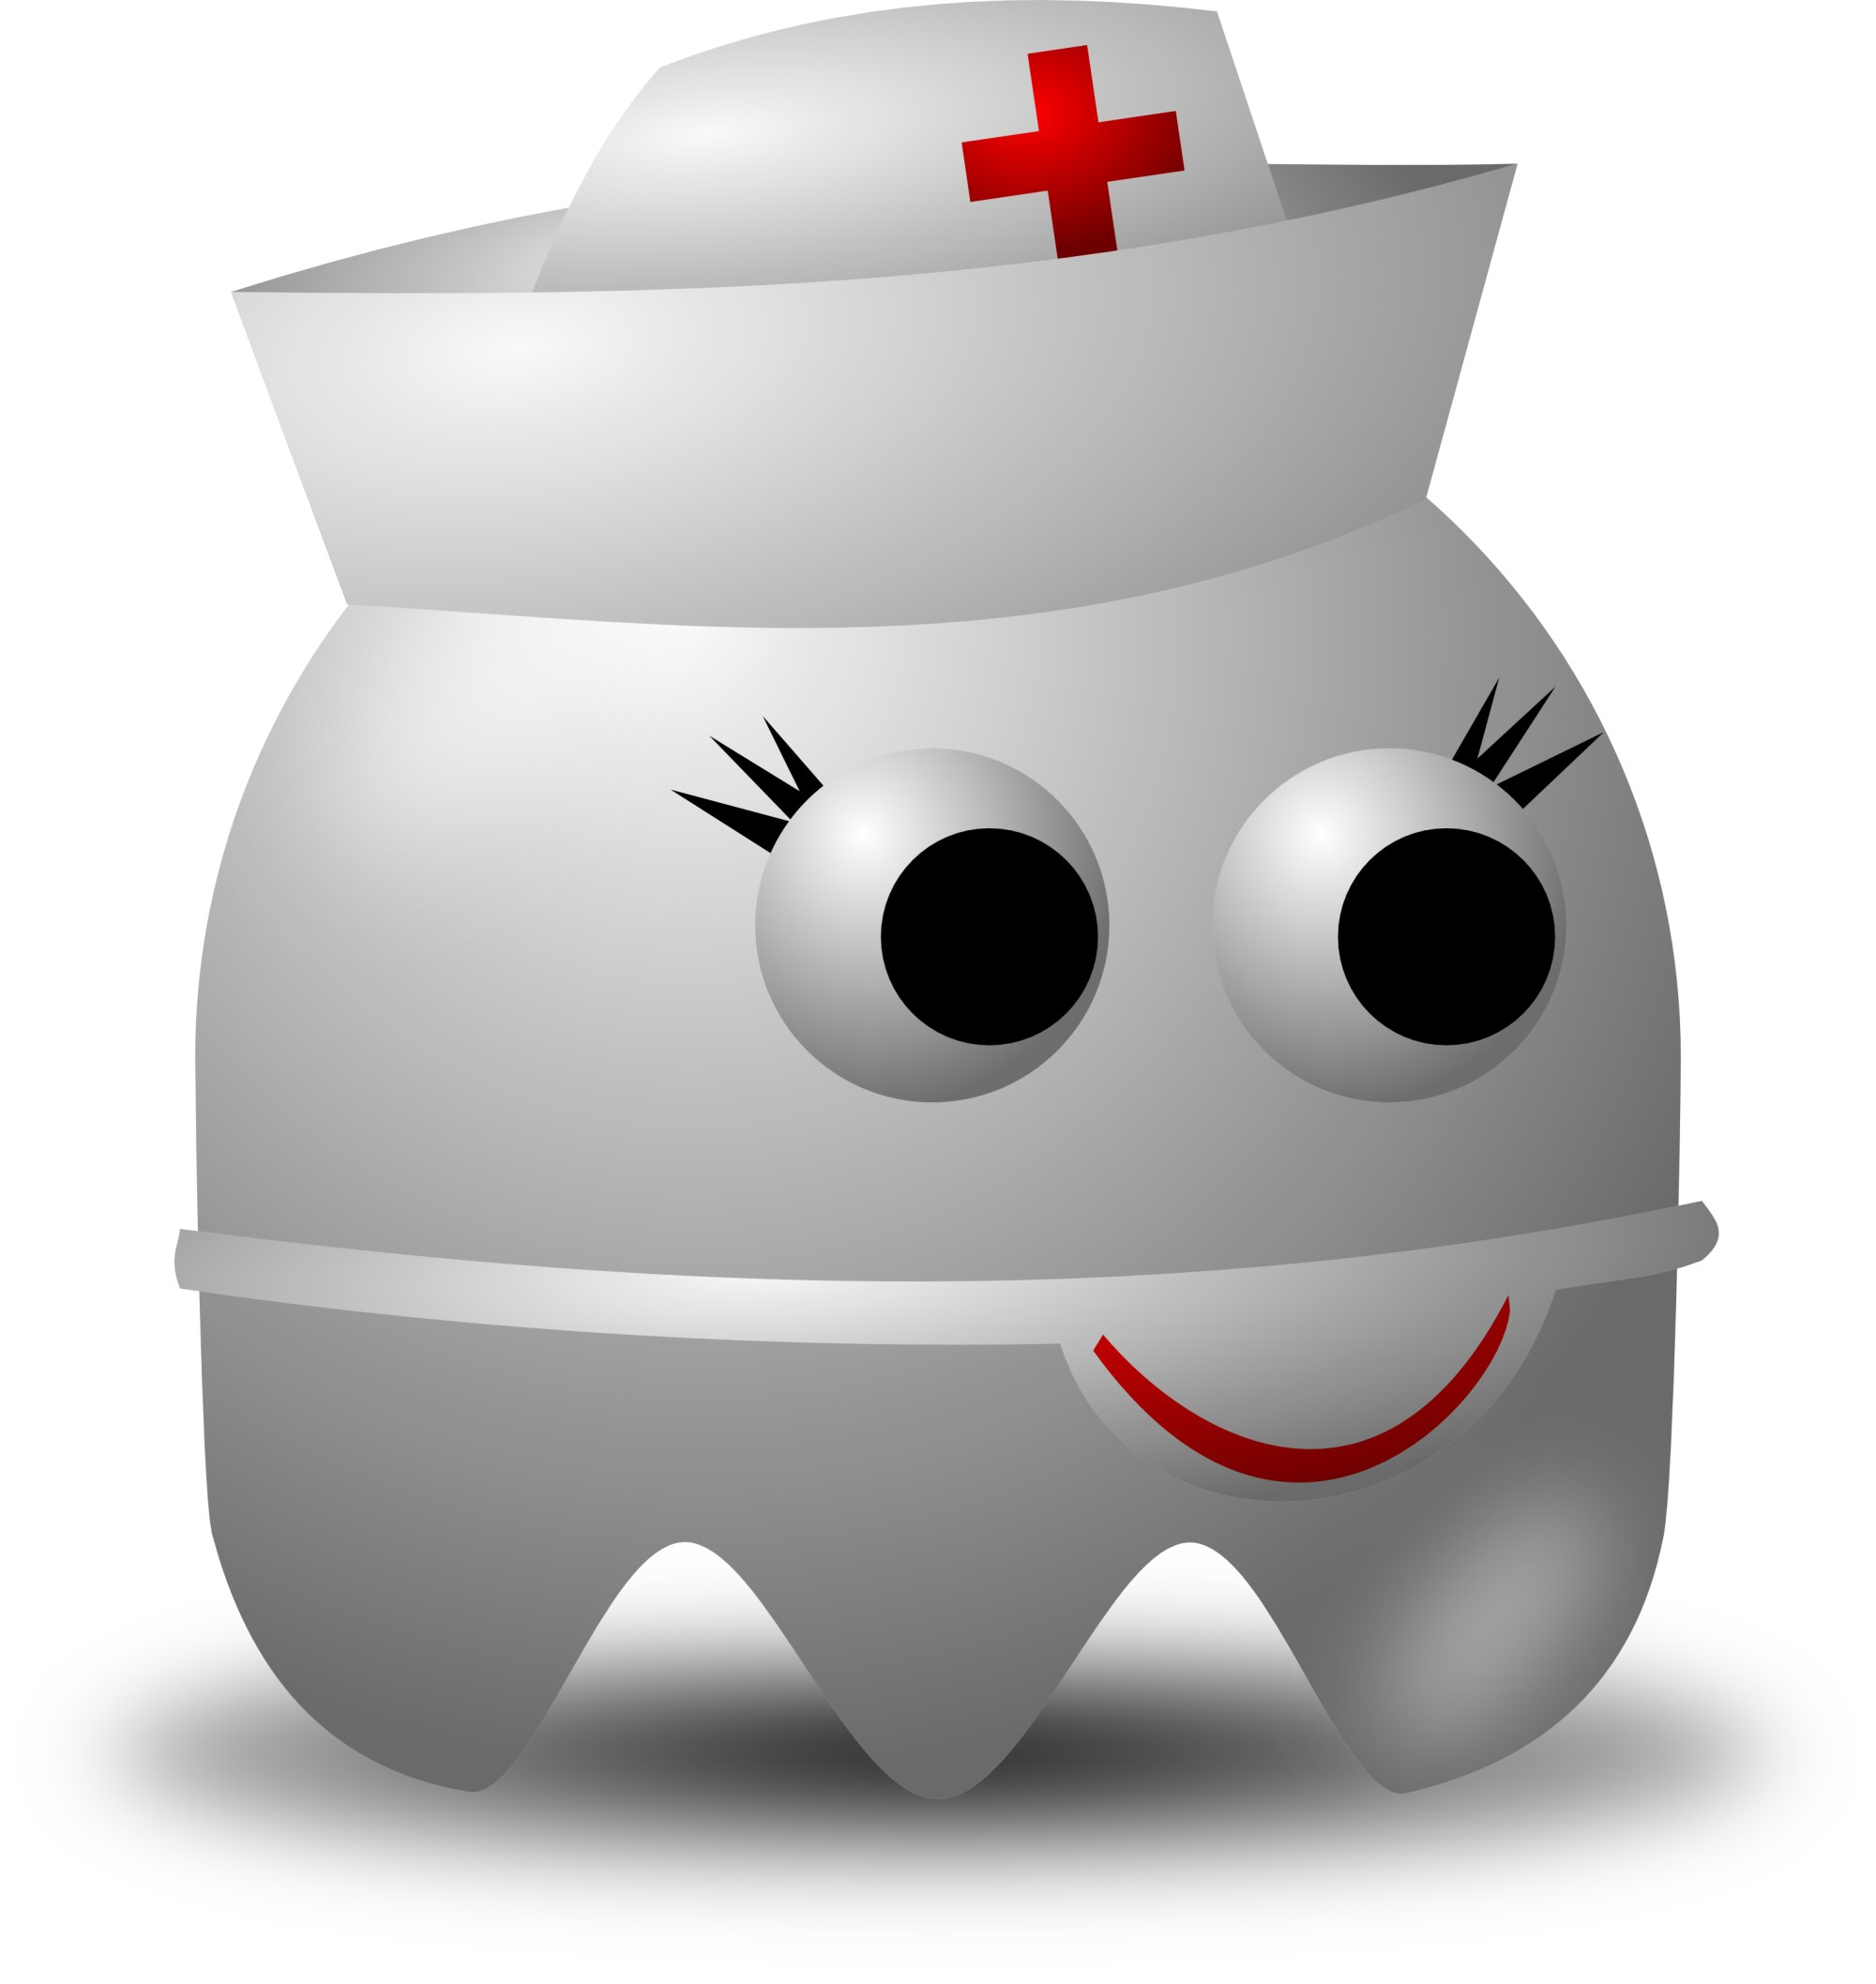 hight resolution of  jpg png svg registered nurse avatar character wearing a hat free vector clipart illustration